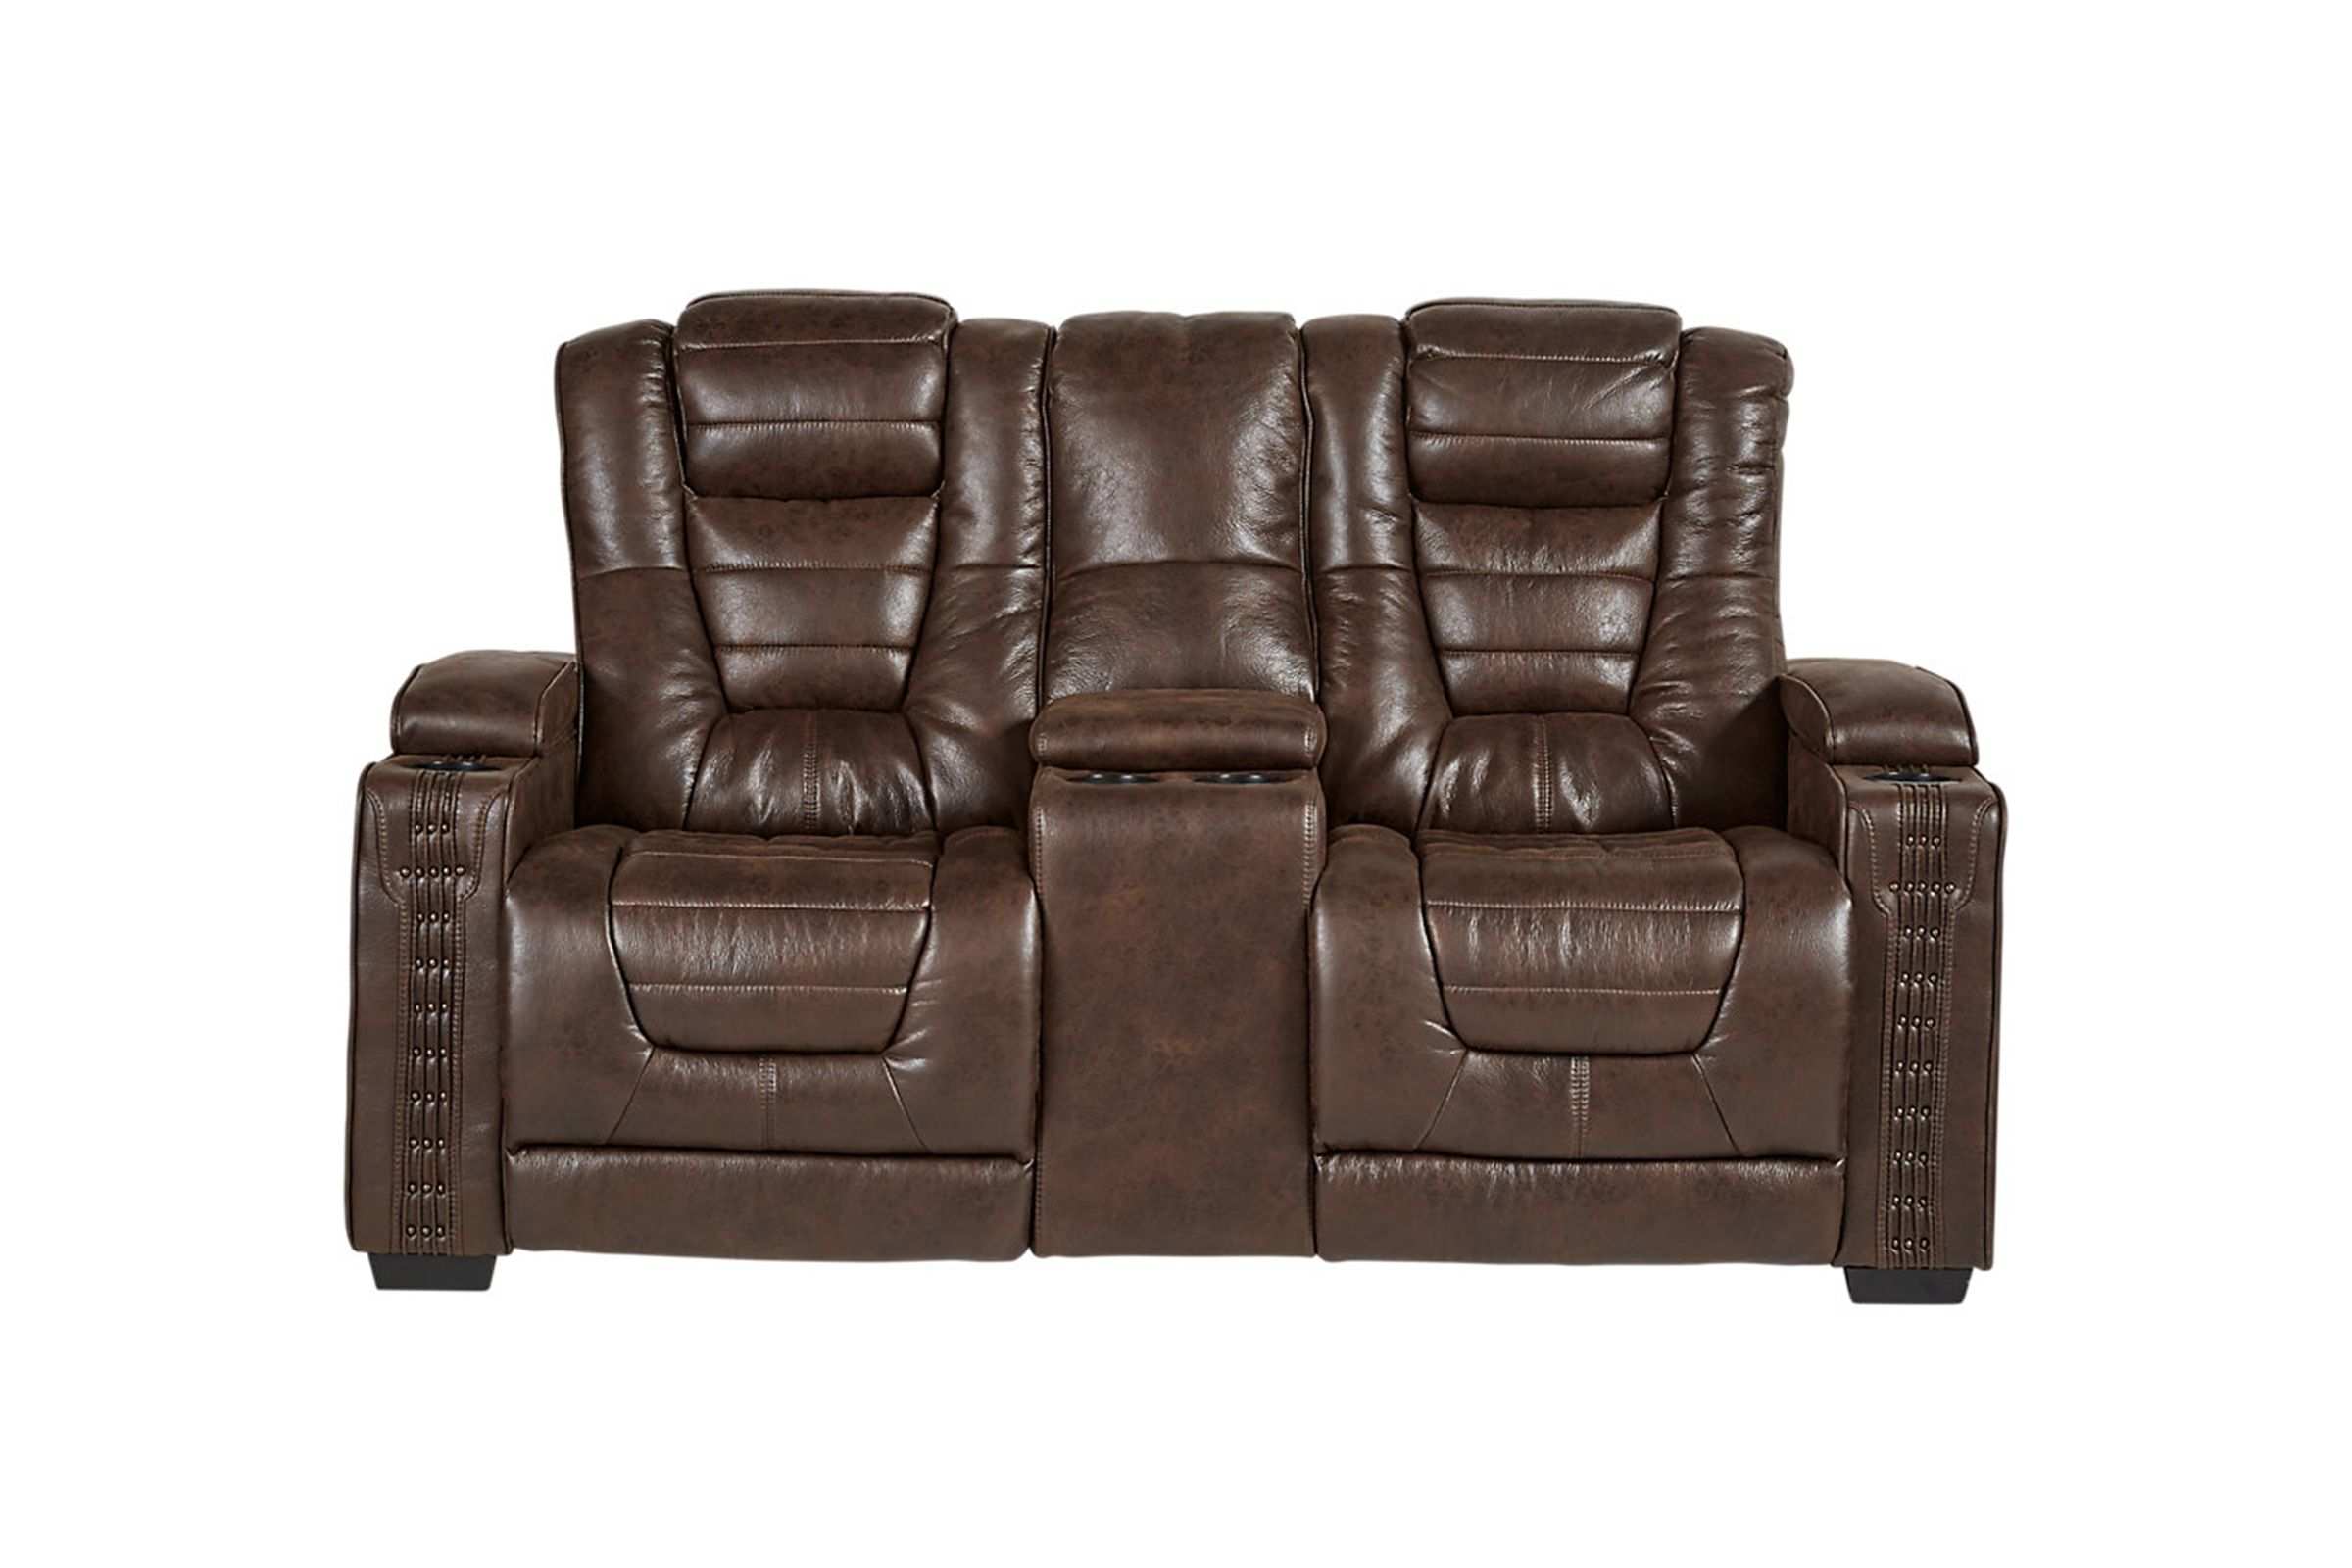 Wondrous Highway To Home Power Reclining Microfiber Loveseat With Console Creativecarmelina Interior Chair Design Creativecarmelinacom